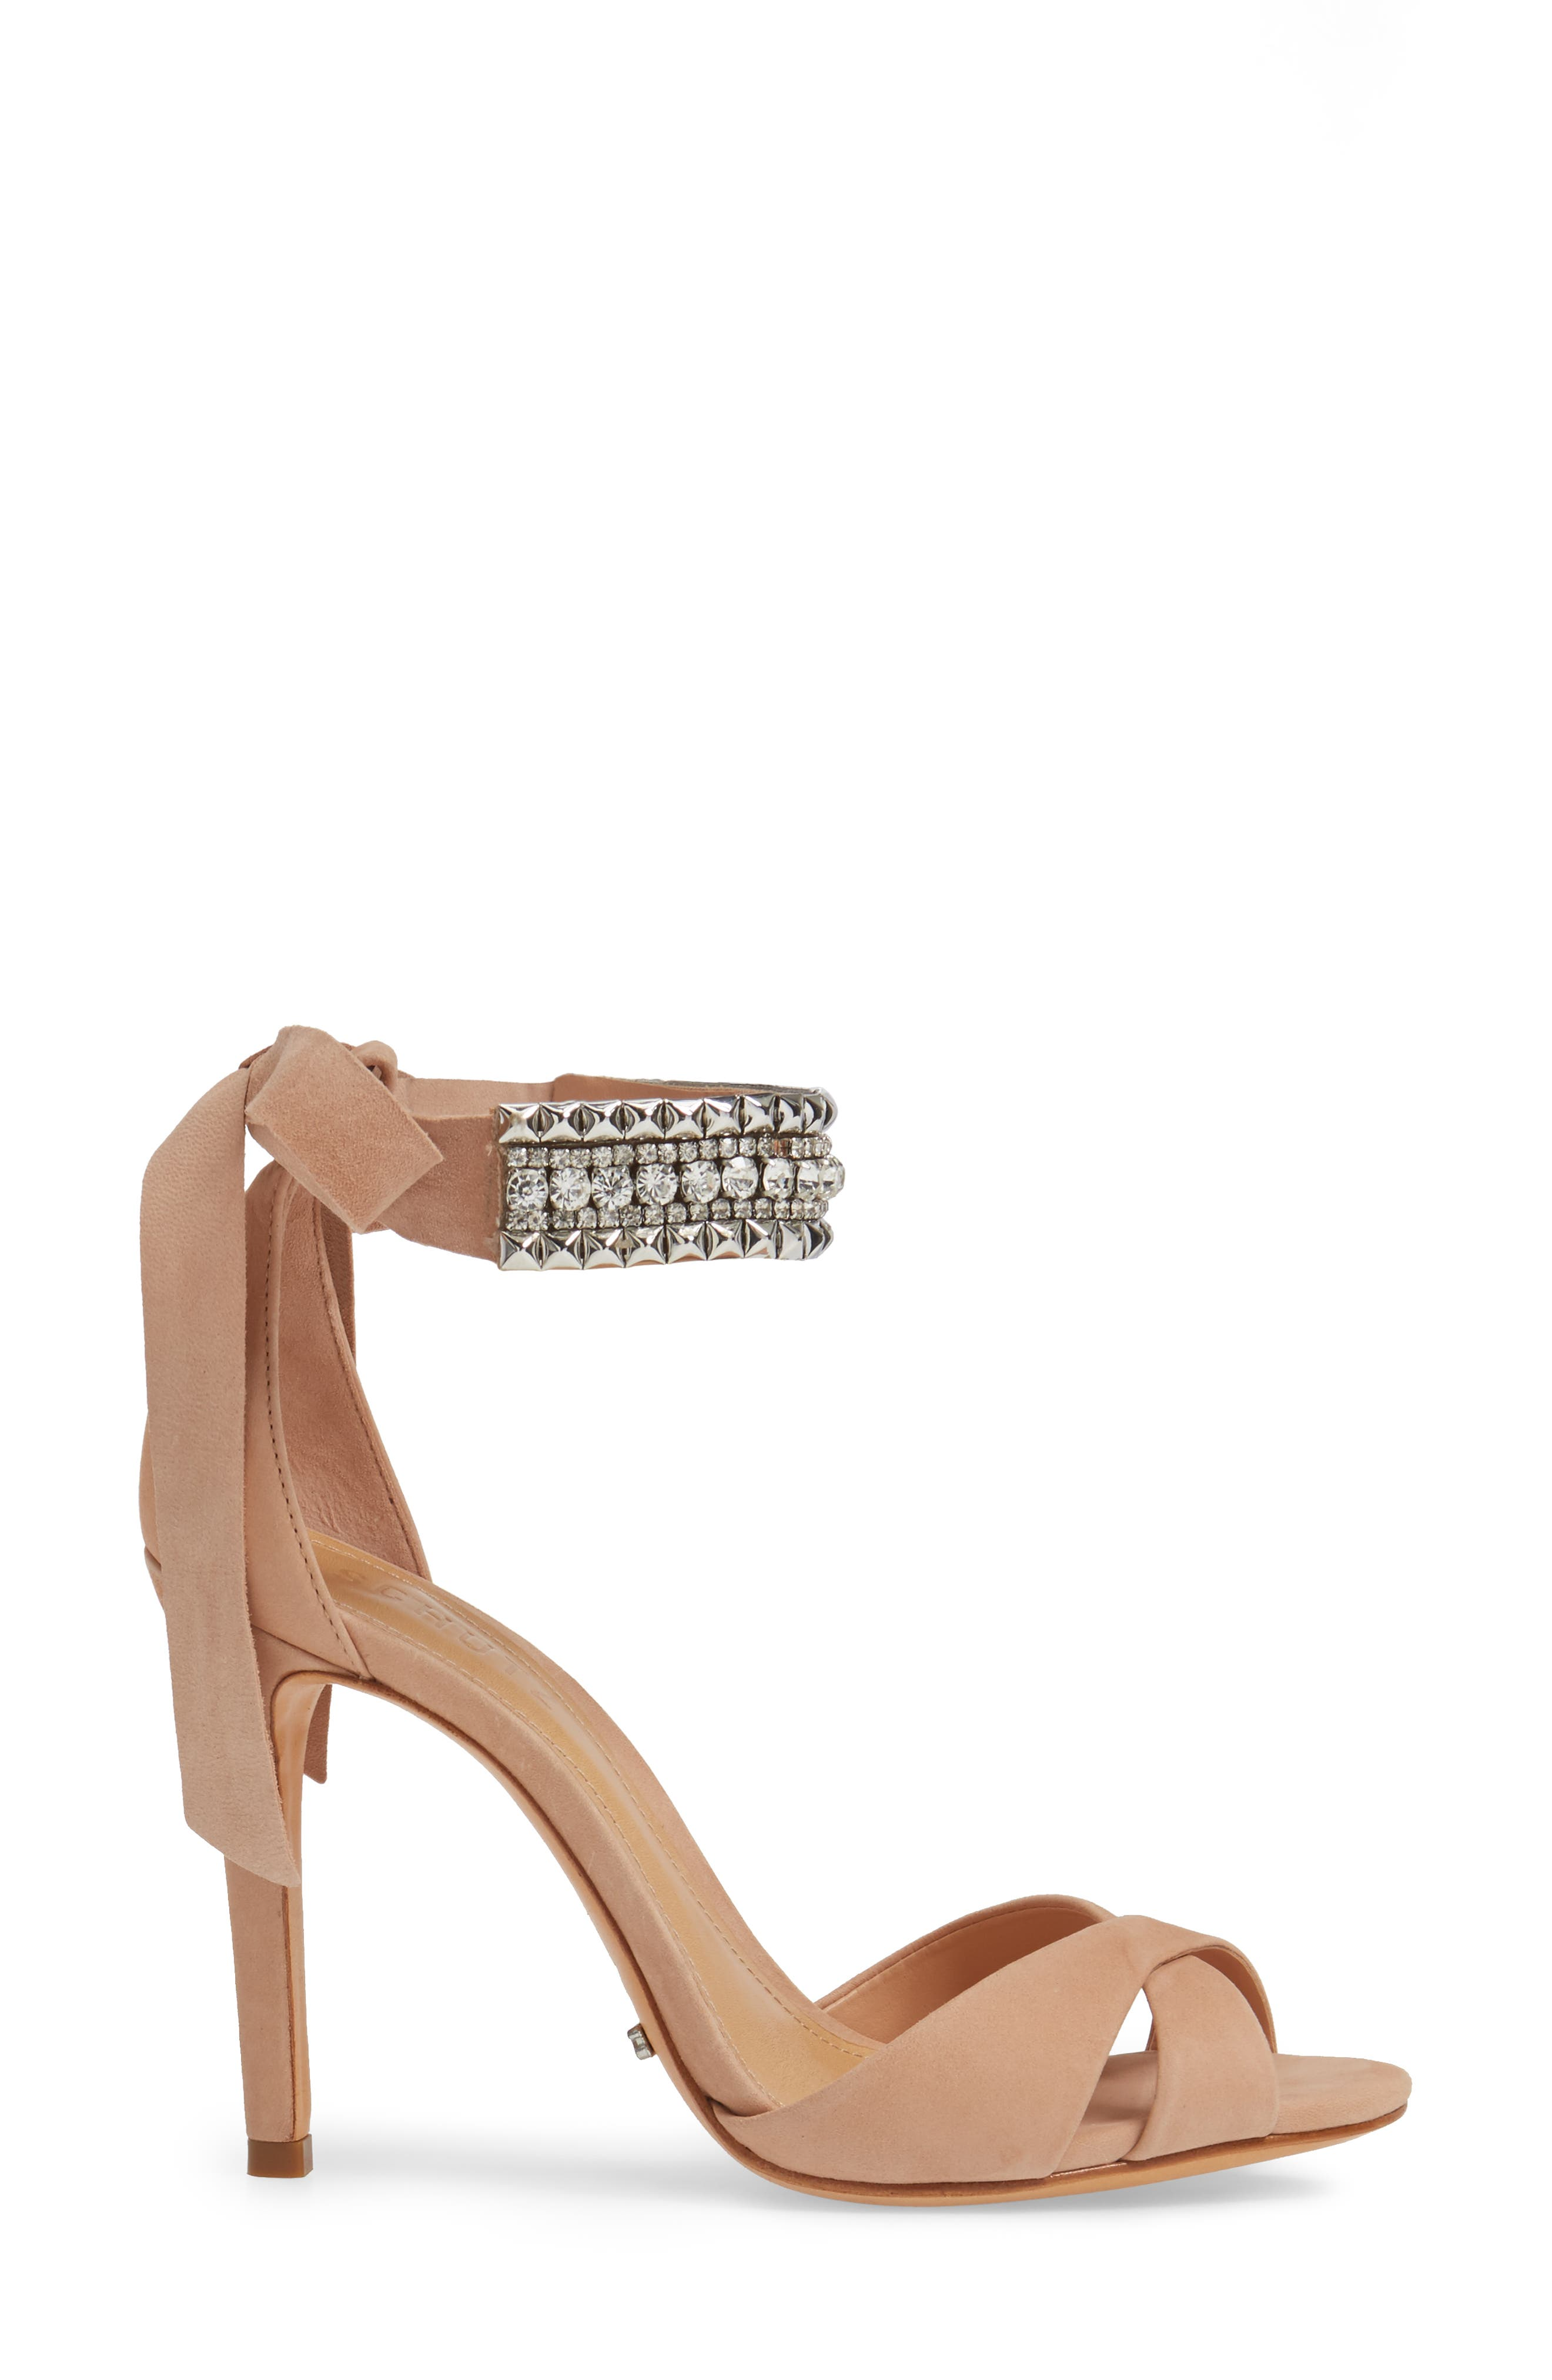 Larazee Embellished Sandal,                             Alternate thumbnail 6, color,